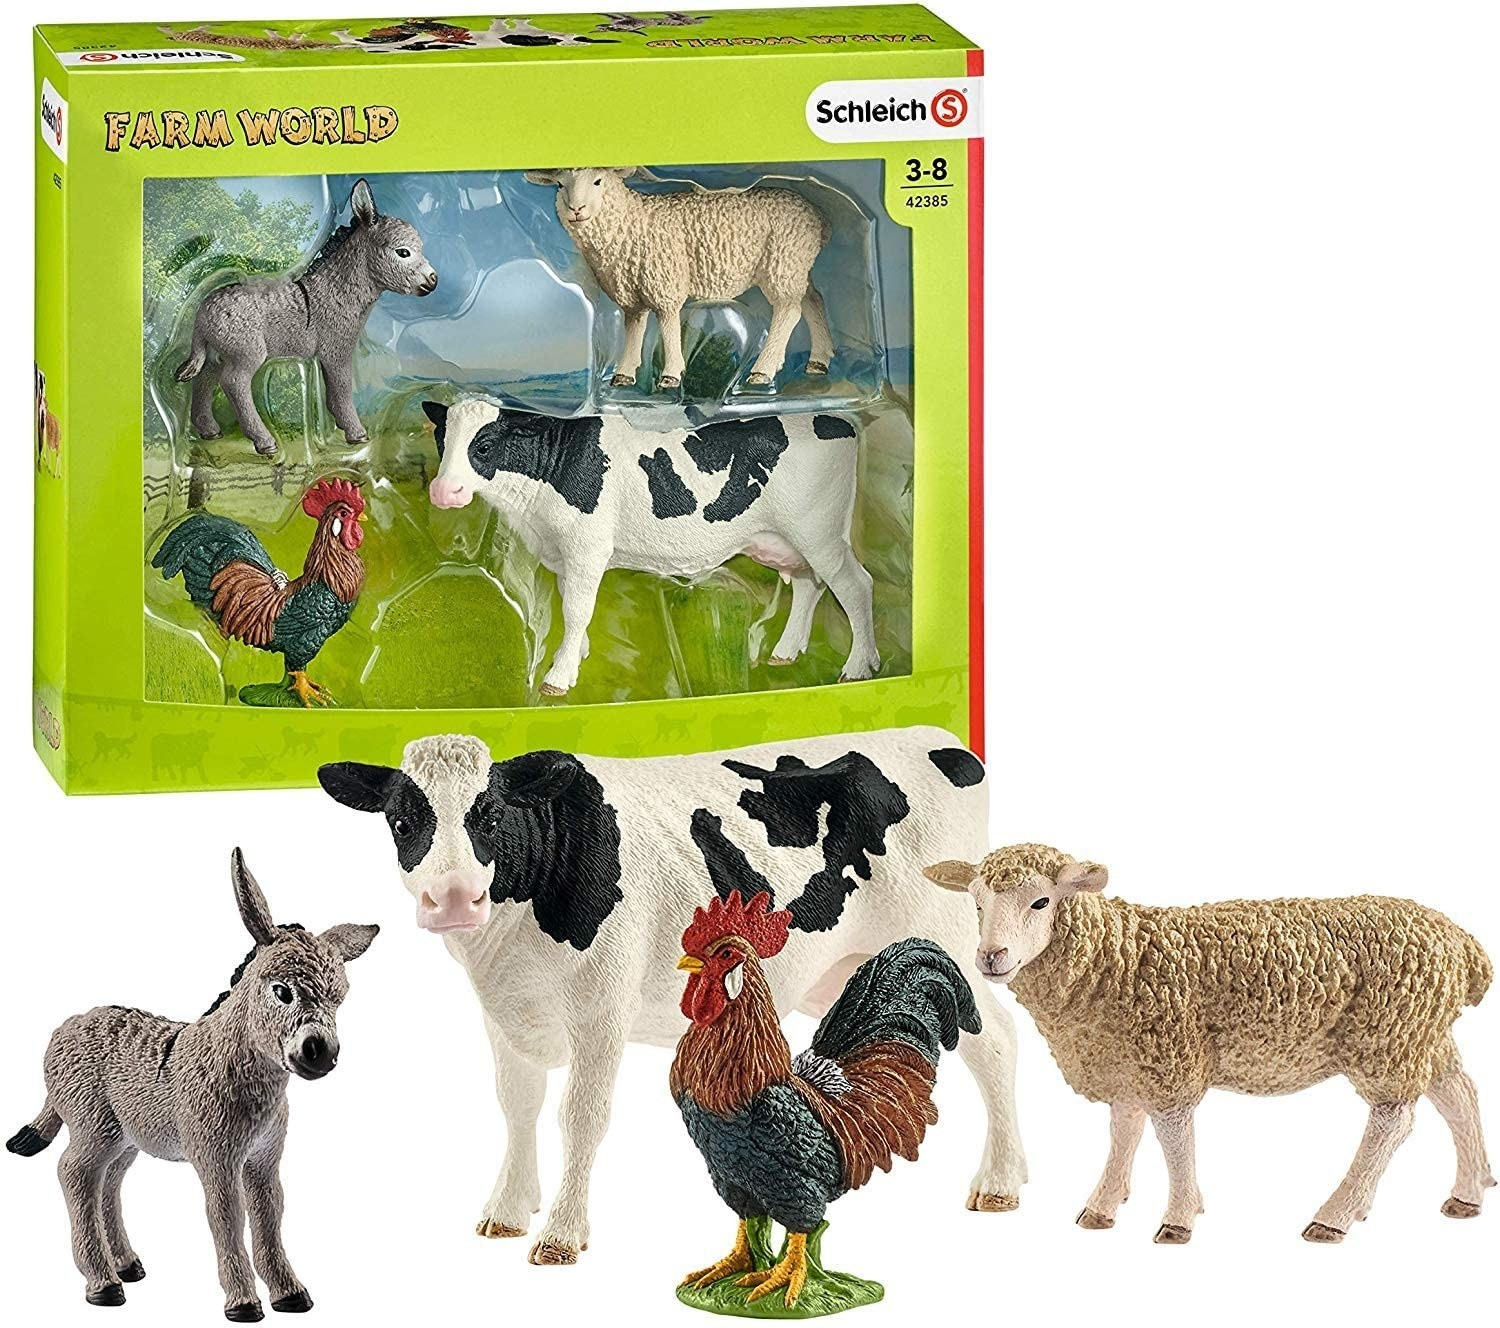 Children's toy figures of a donkey, cow, rooster, and sheep